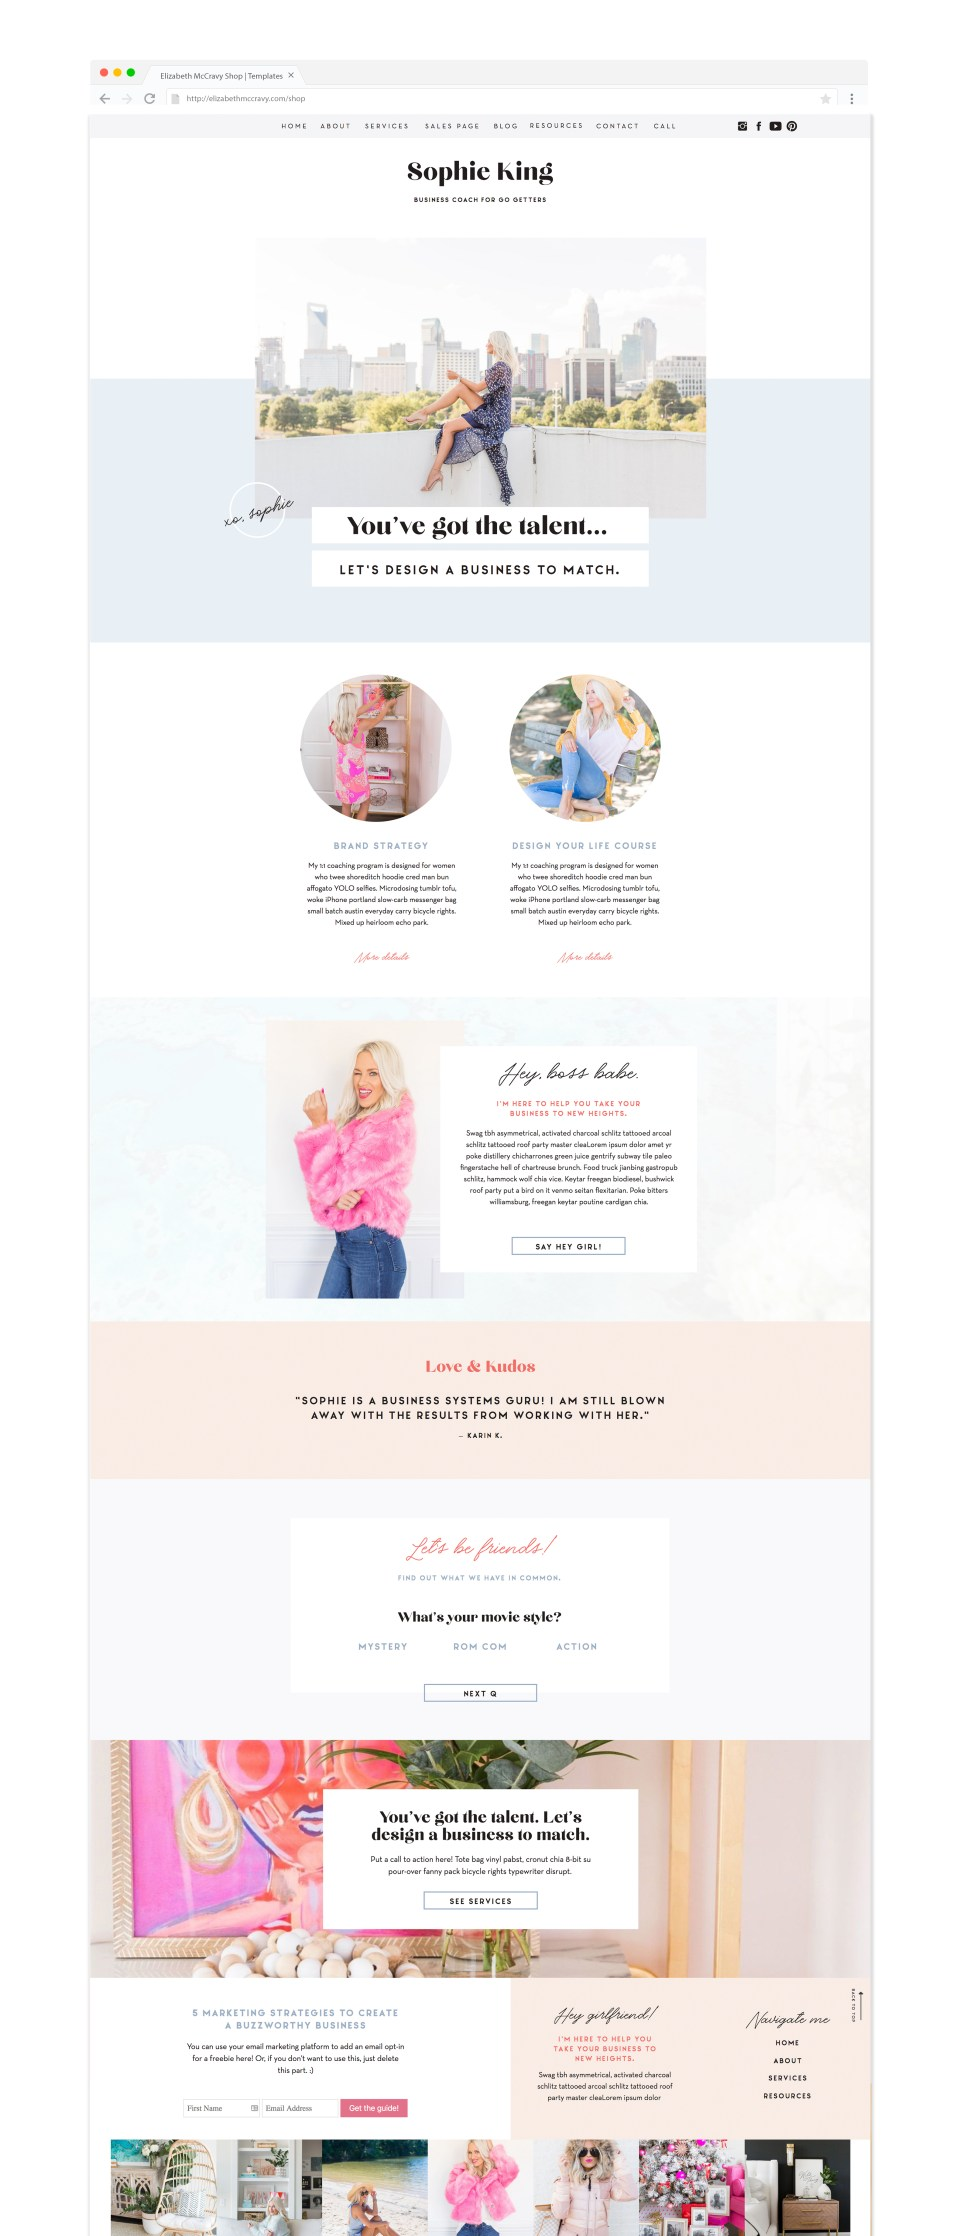 Showit website template for coaches and personal brand businesses - Showit5 Template by EM Shop